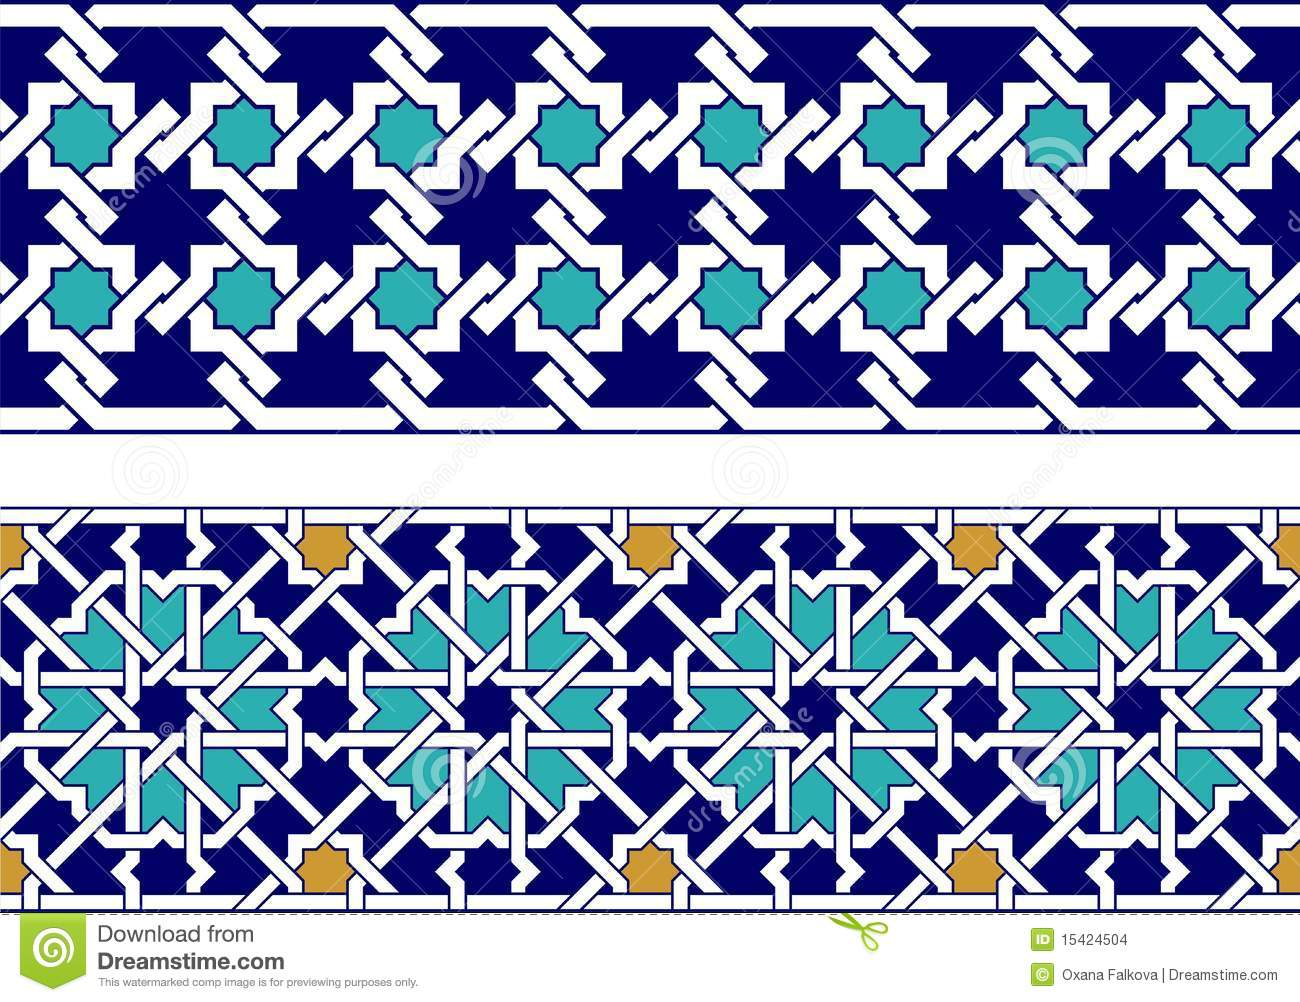 Islamic border stock vector. Illustration of decorative ... Islamic Art Design Border